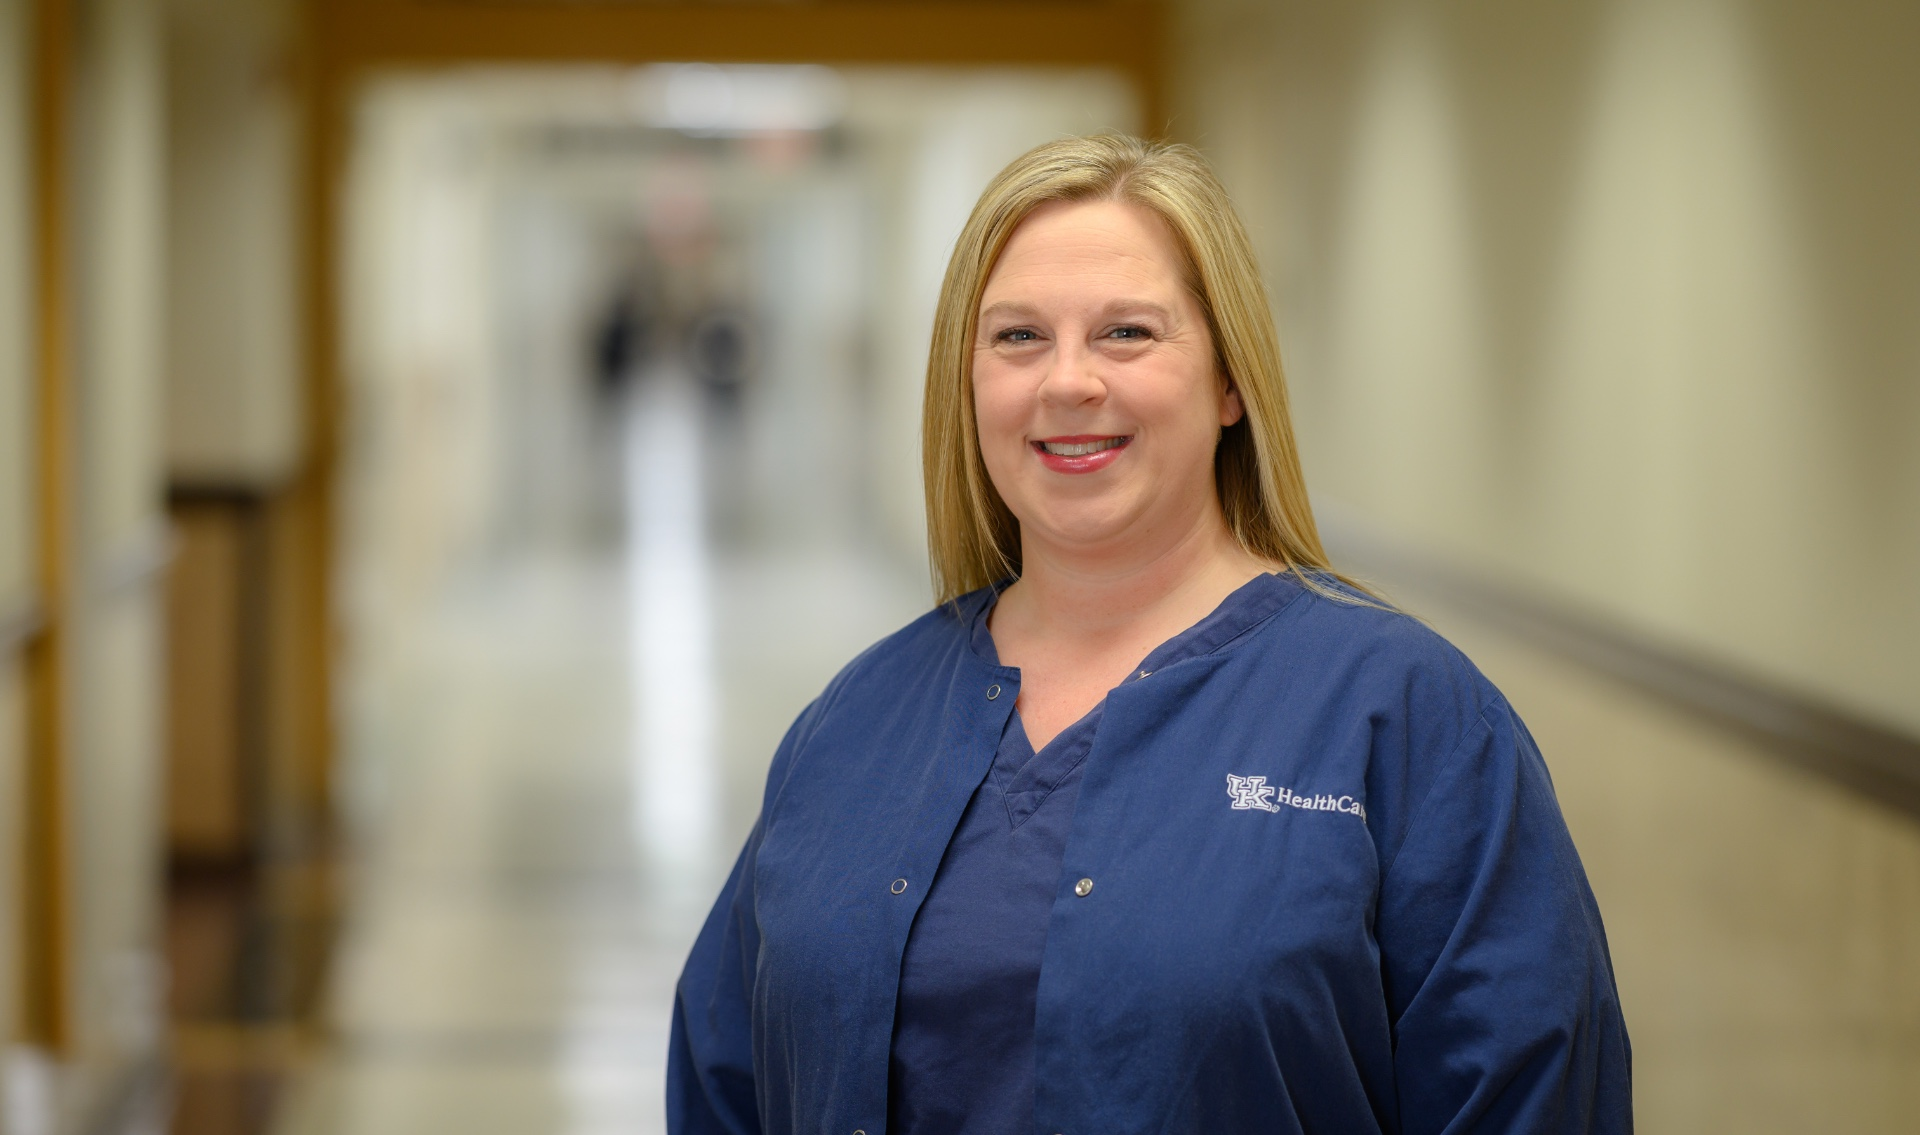 Allison Pinkston, a middle aged blonde white woman, stands smiling in the hospital hallway. She is wearing blue scrubs, as part of the required uniform.